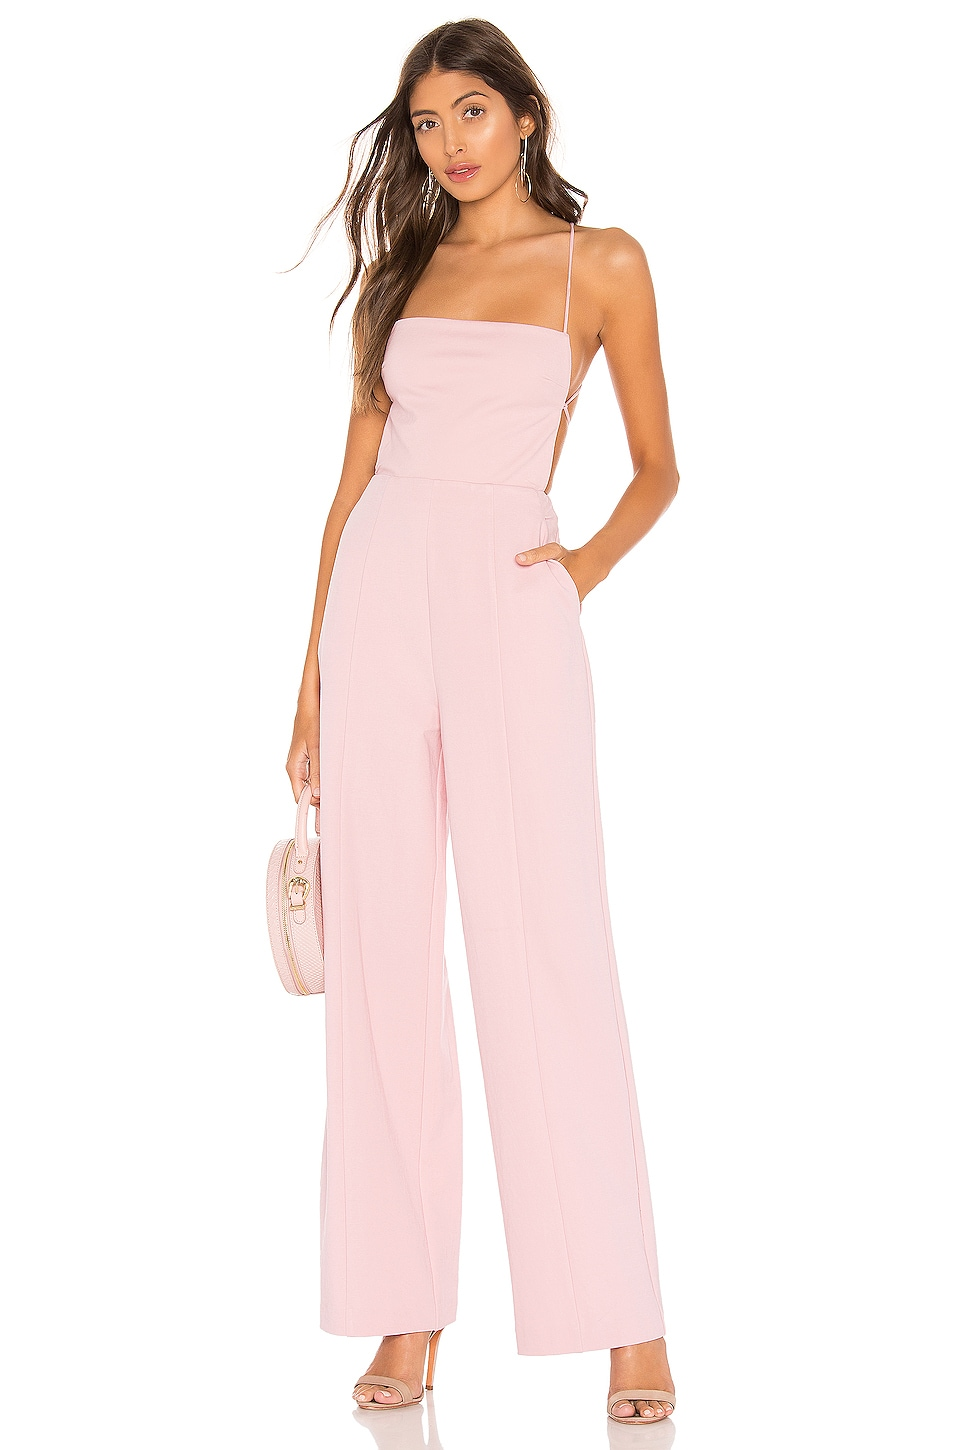 NBD Prosecco Jumpsuit in Pink